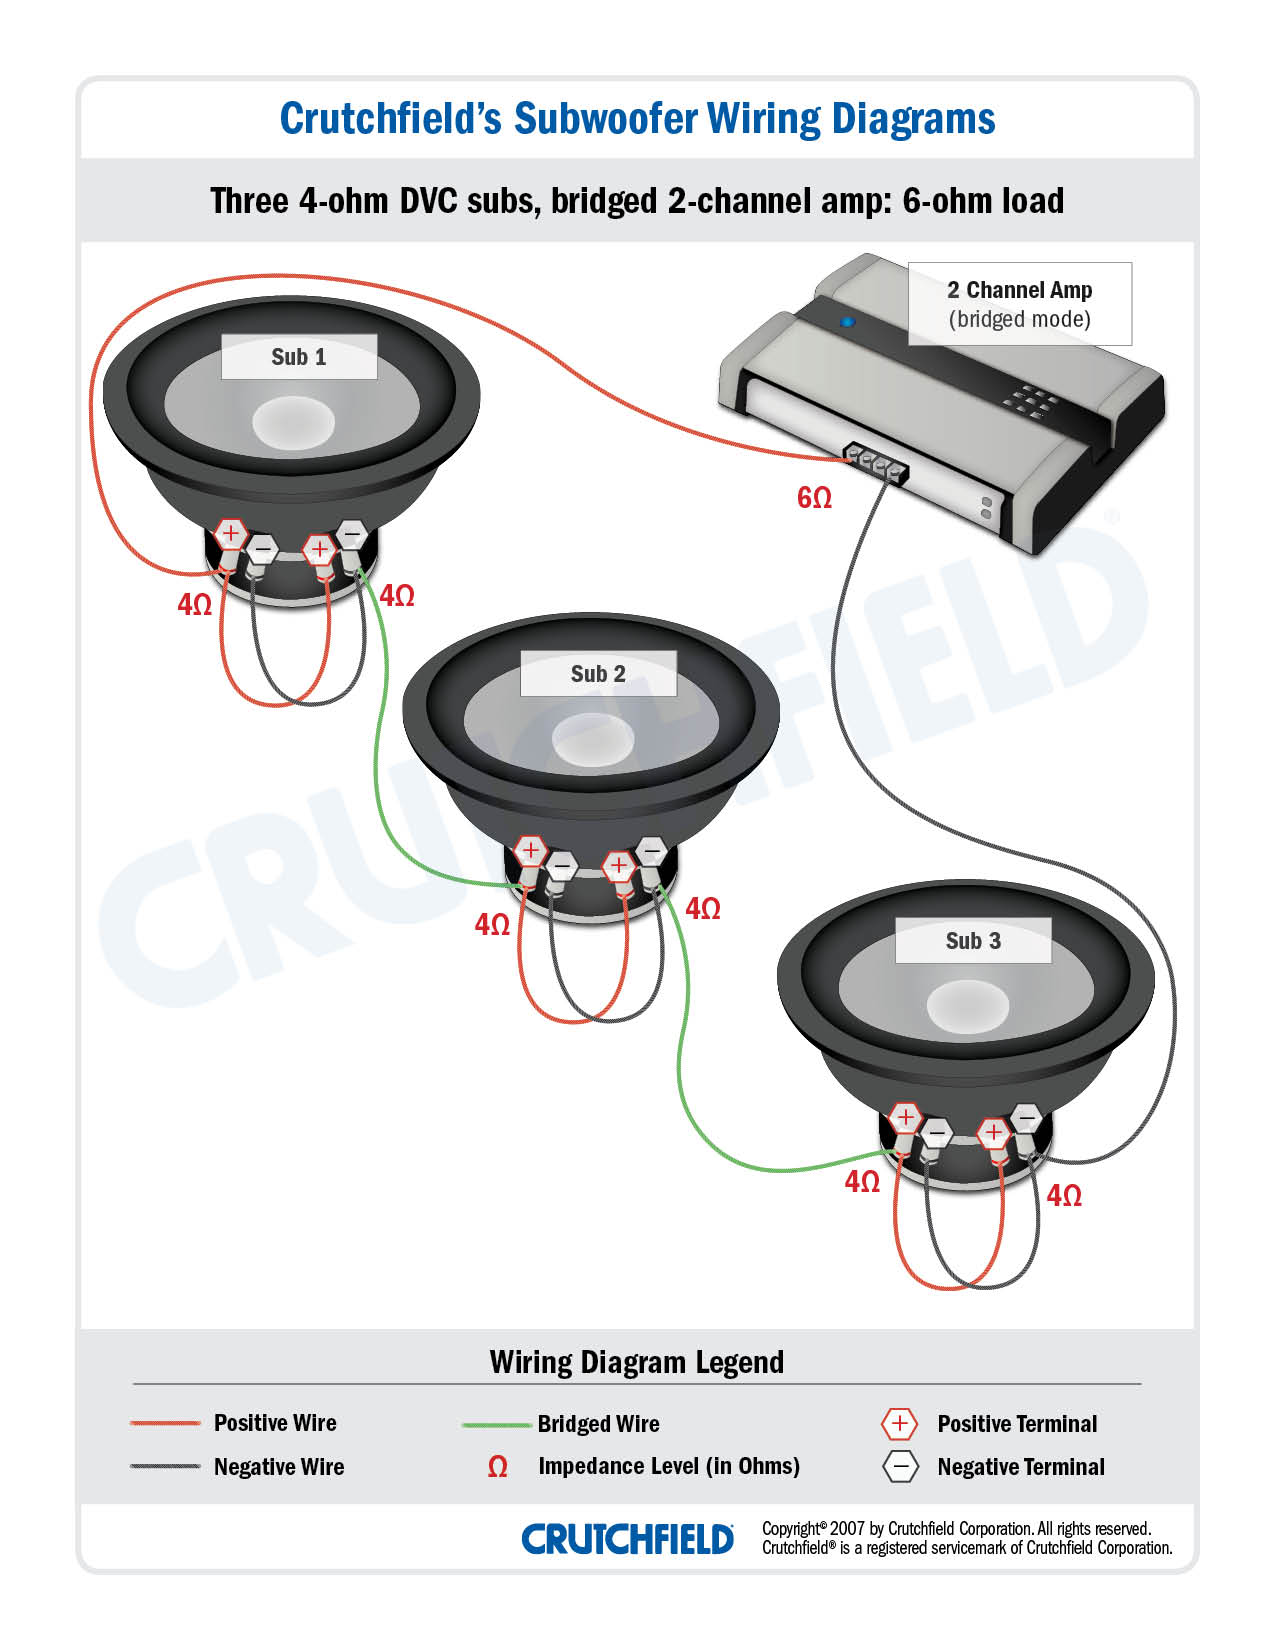 3 DVC 4 ohm 2 ch subwoofer wiring diagrams subwoofer wiring diagrams at mifinder.co